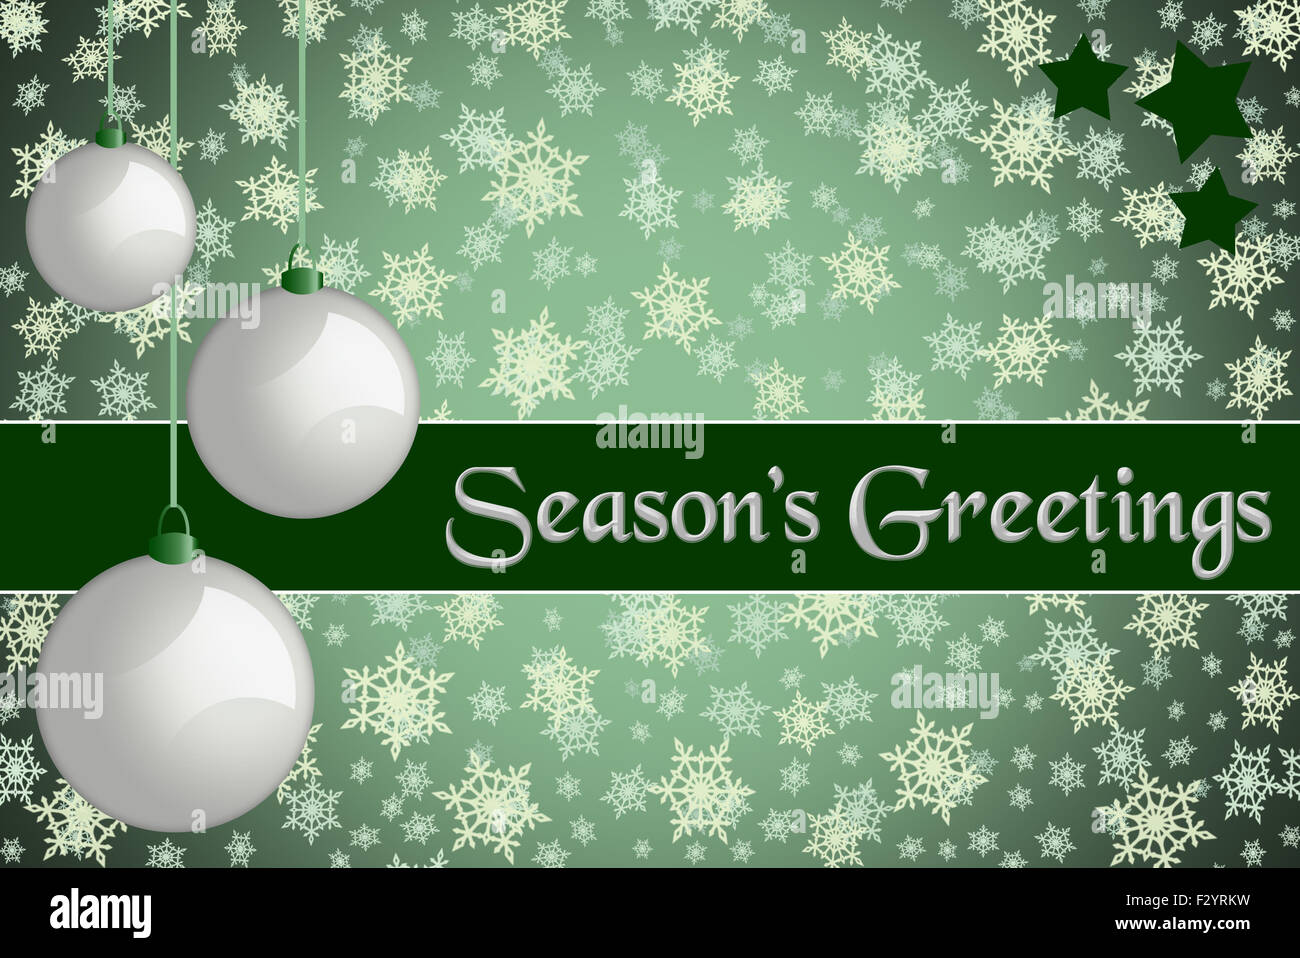 Christmas Greeting Card Seasons Greetings Green Colored